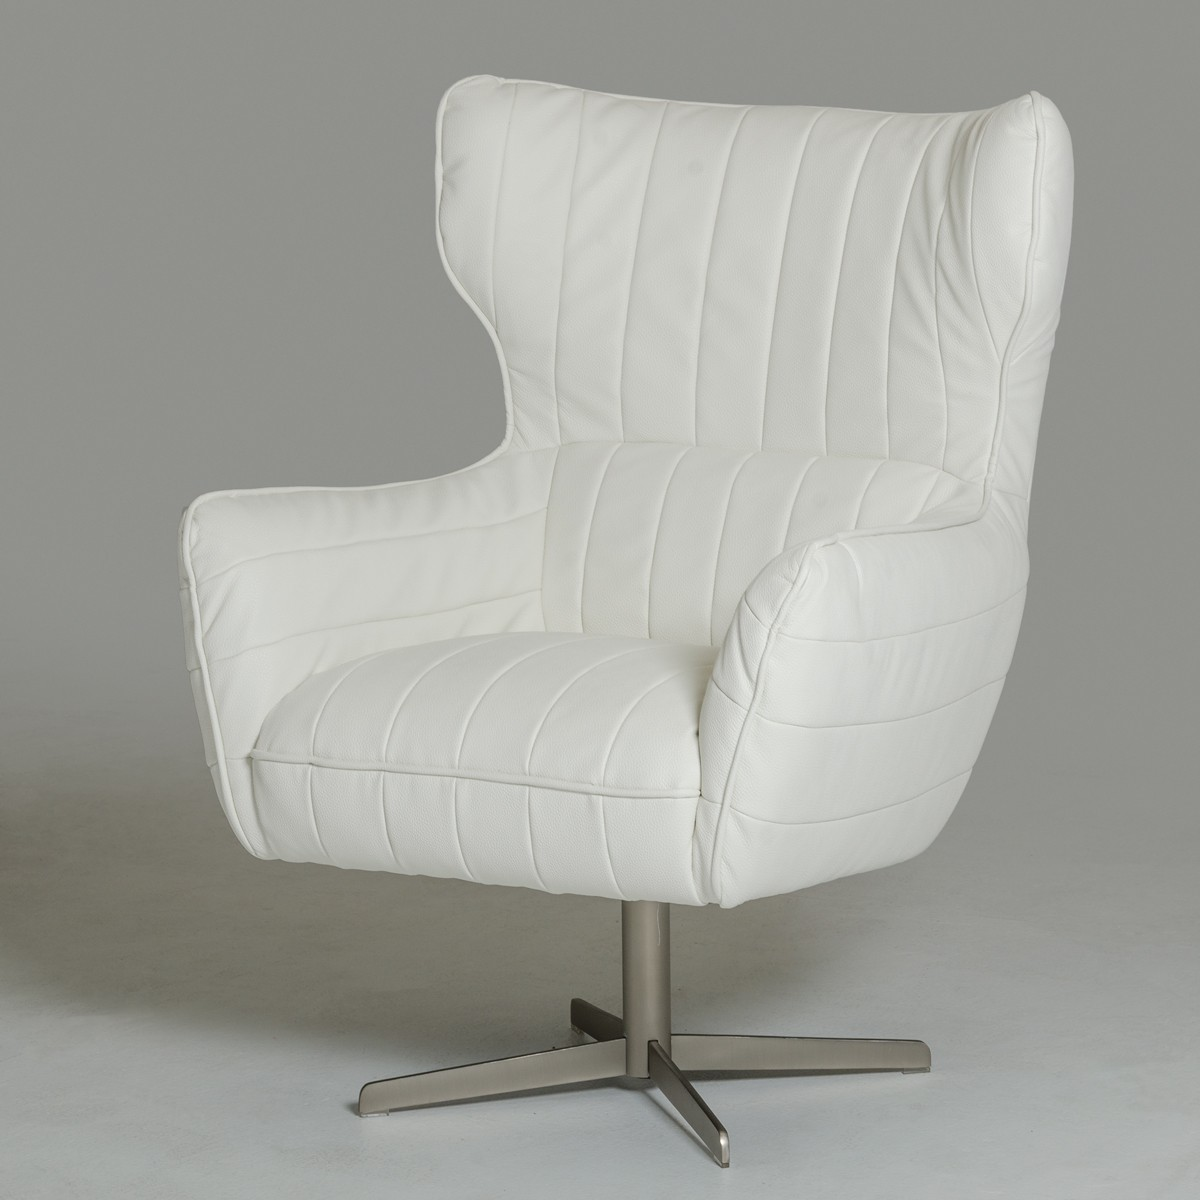 swivel accent chairs hanging garden chair uk white leather charlotte north carolina